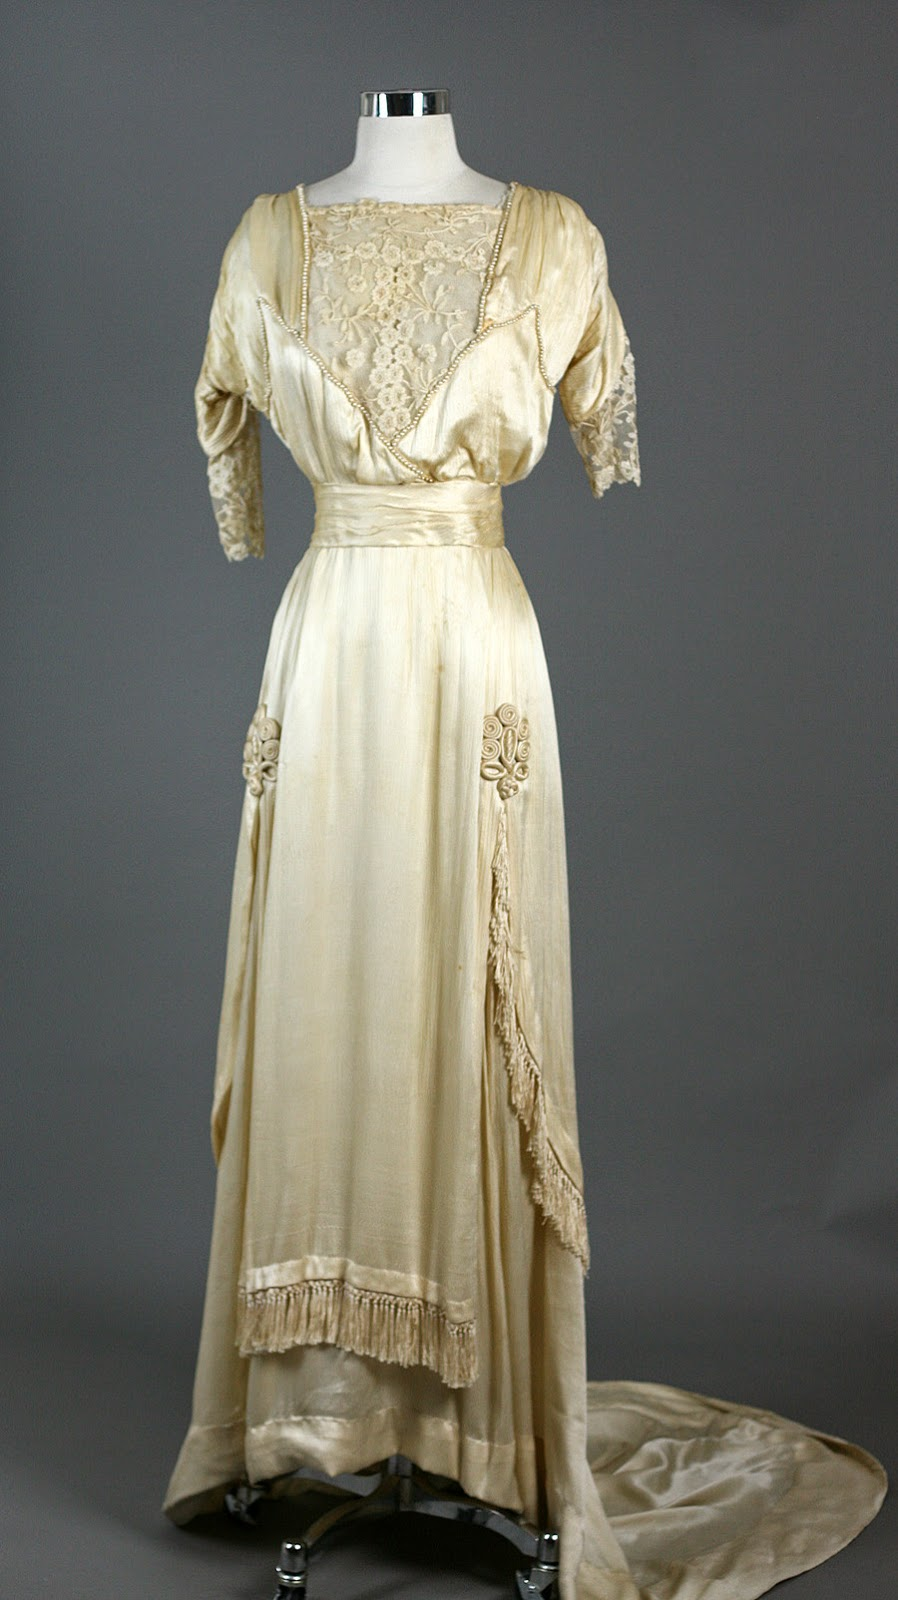 All The Pretty Dresses Titanic Era Dress